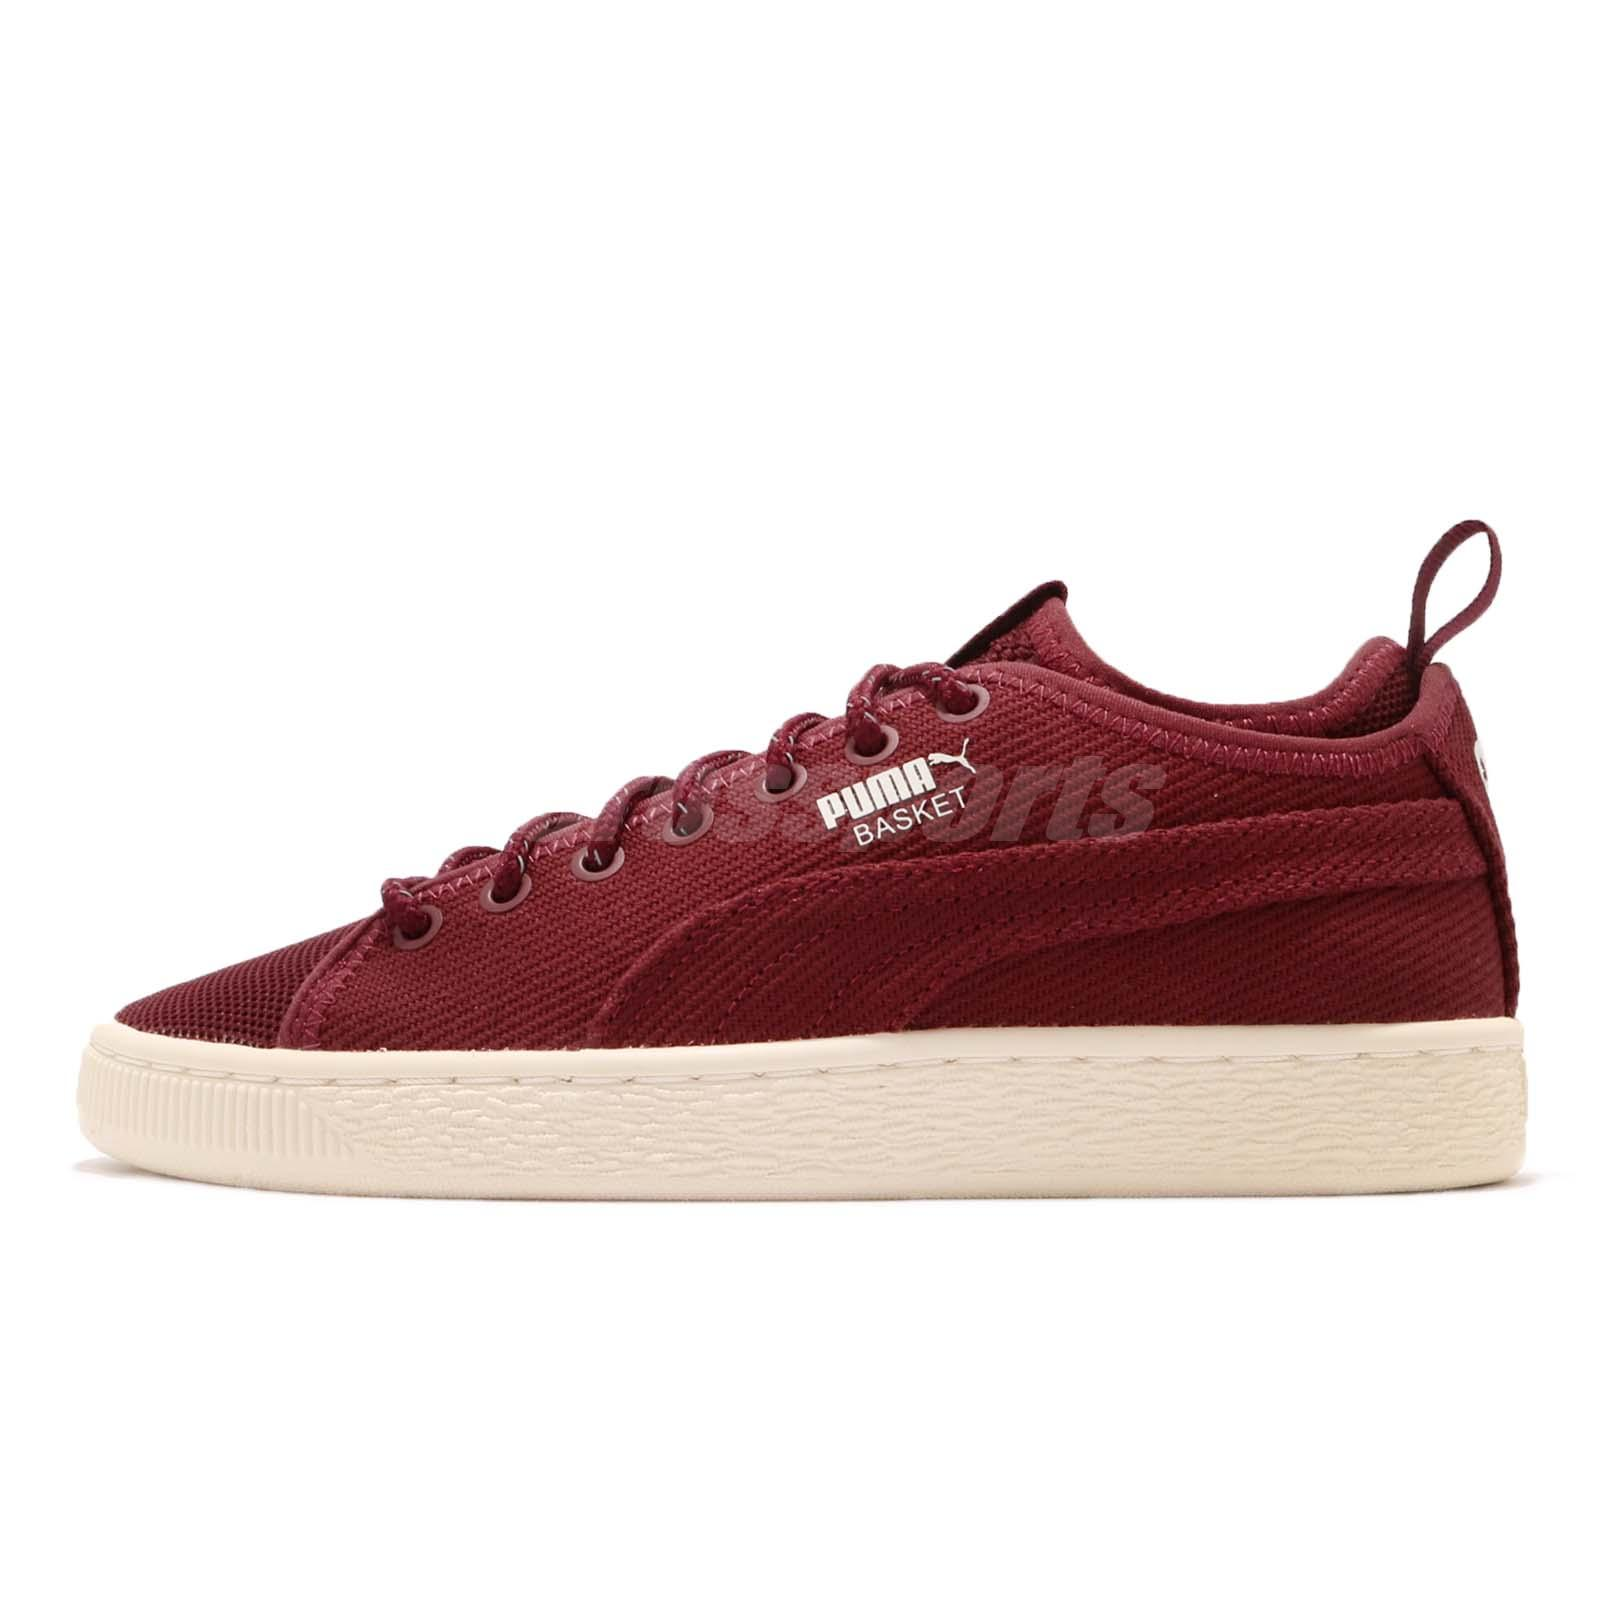 the latest 941f5 28ac4 Details about Puma Basket Classic Sock LO V2 Pomegranate Whisper White  Casual Shoes 366614-03